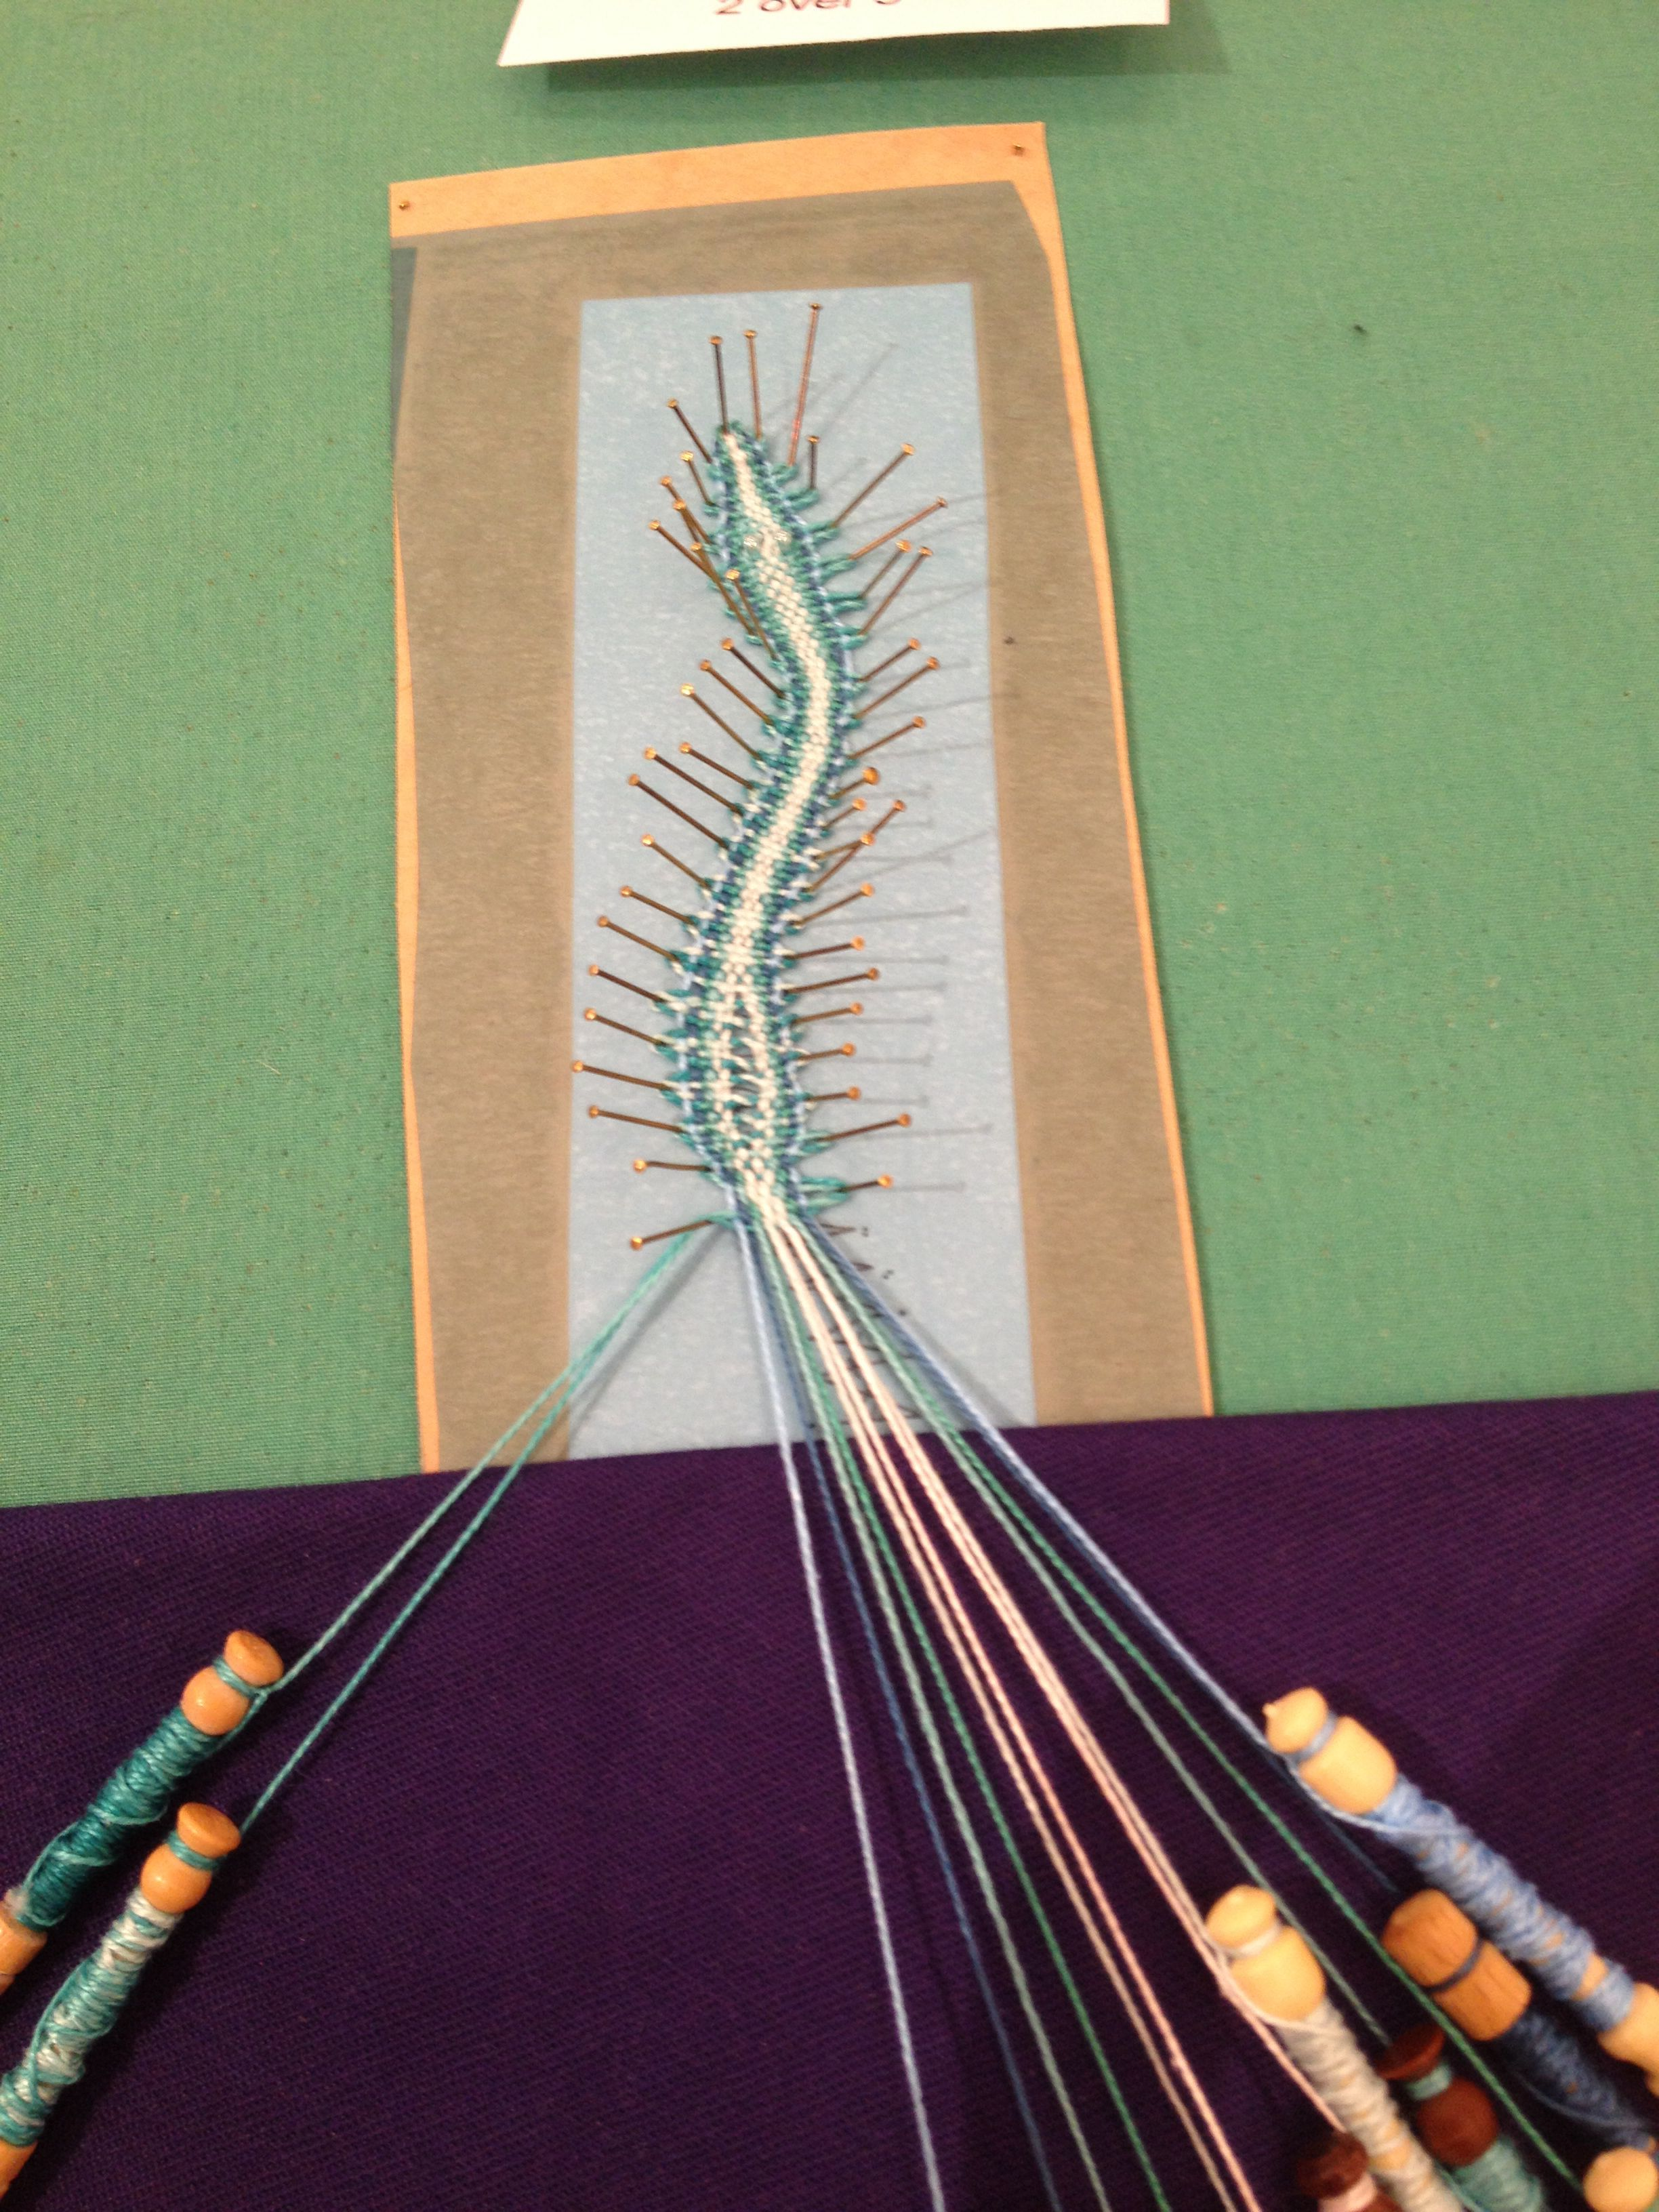 I had a play with making bobbin lace last week A snake bookmark